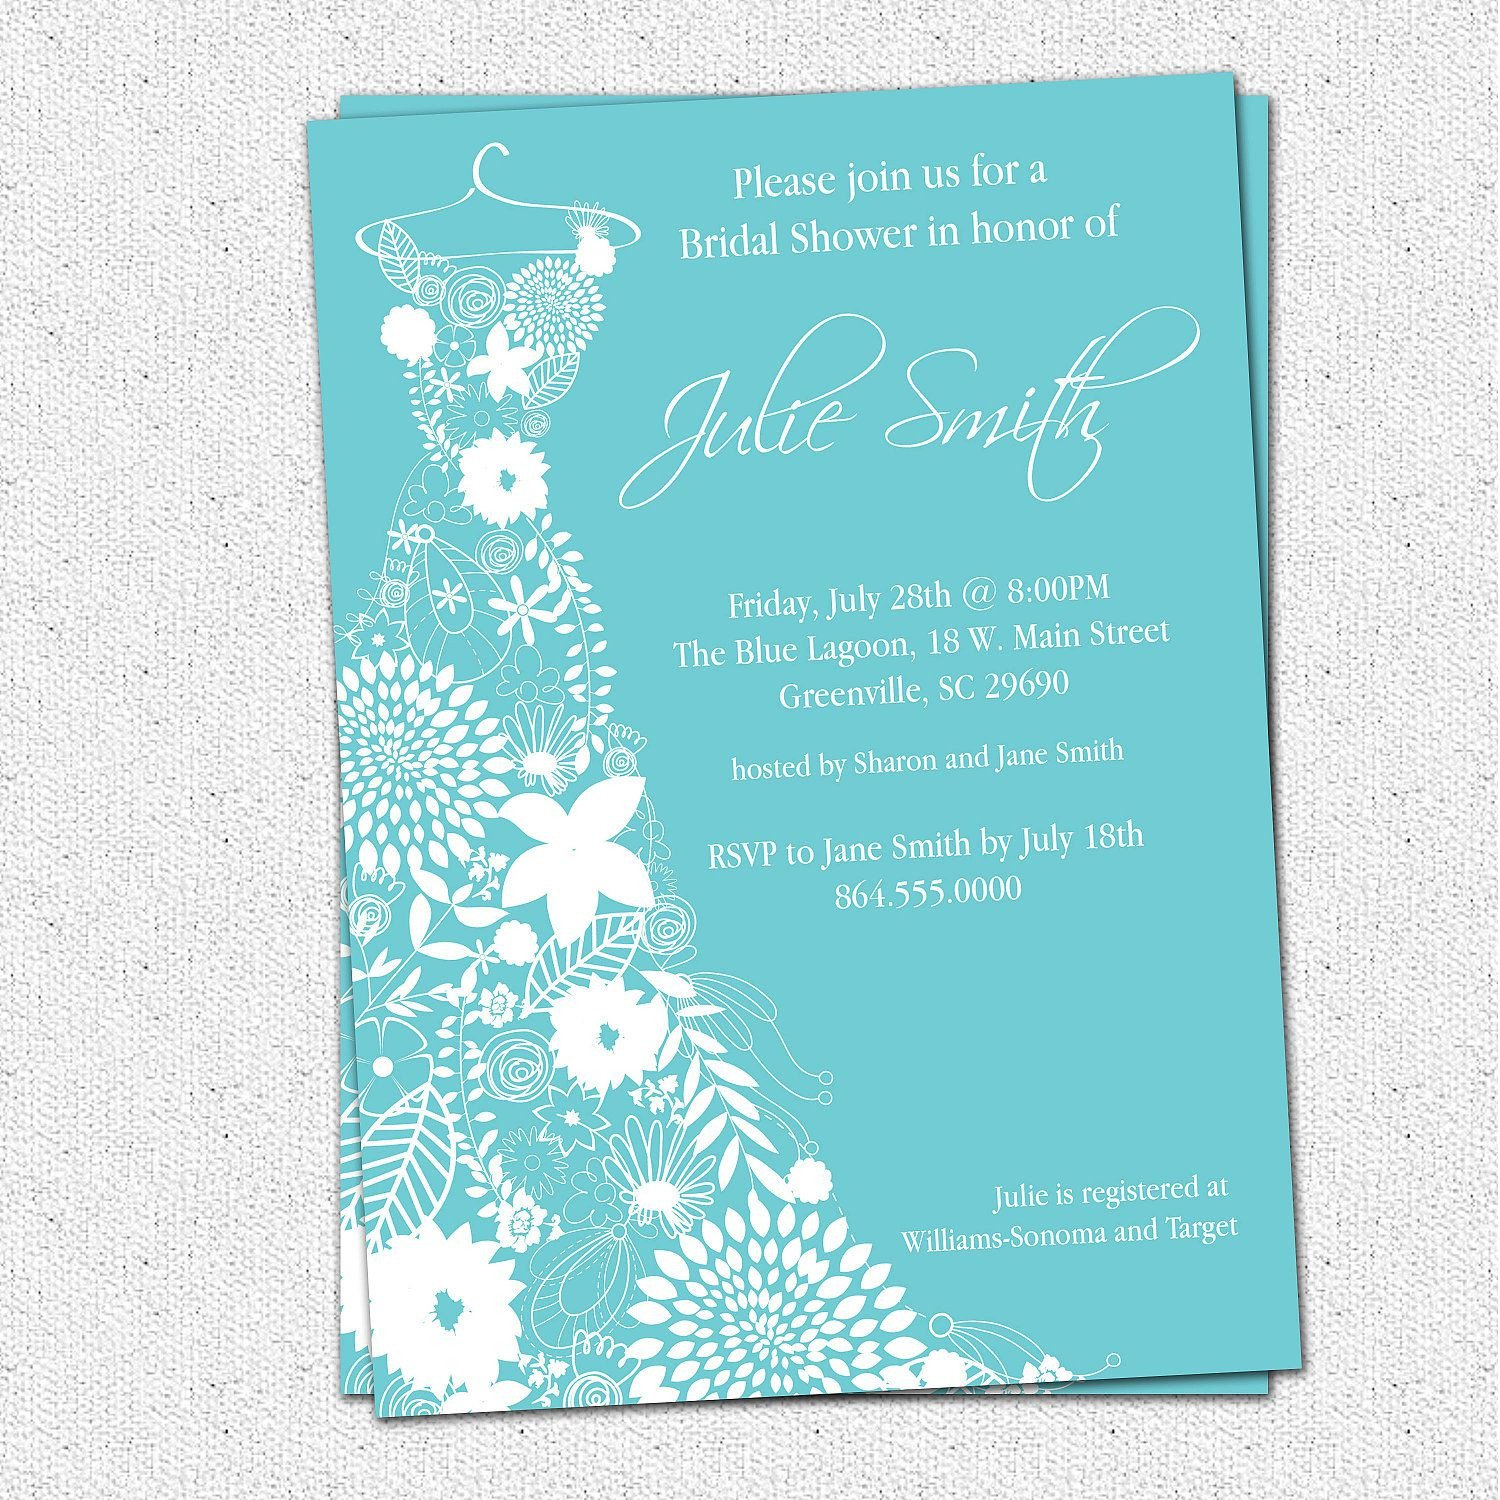 Bridal Shower Card Template Bridal Shower Invitation Bridal Shower Invitations